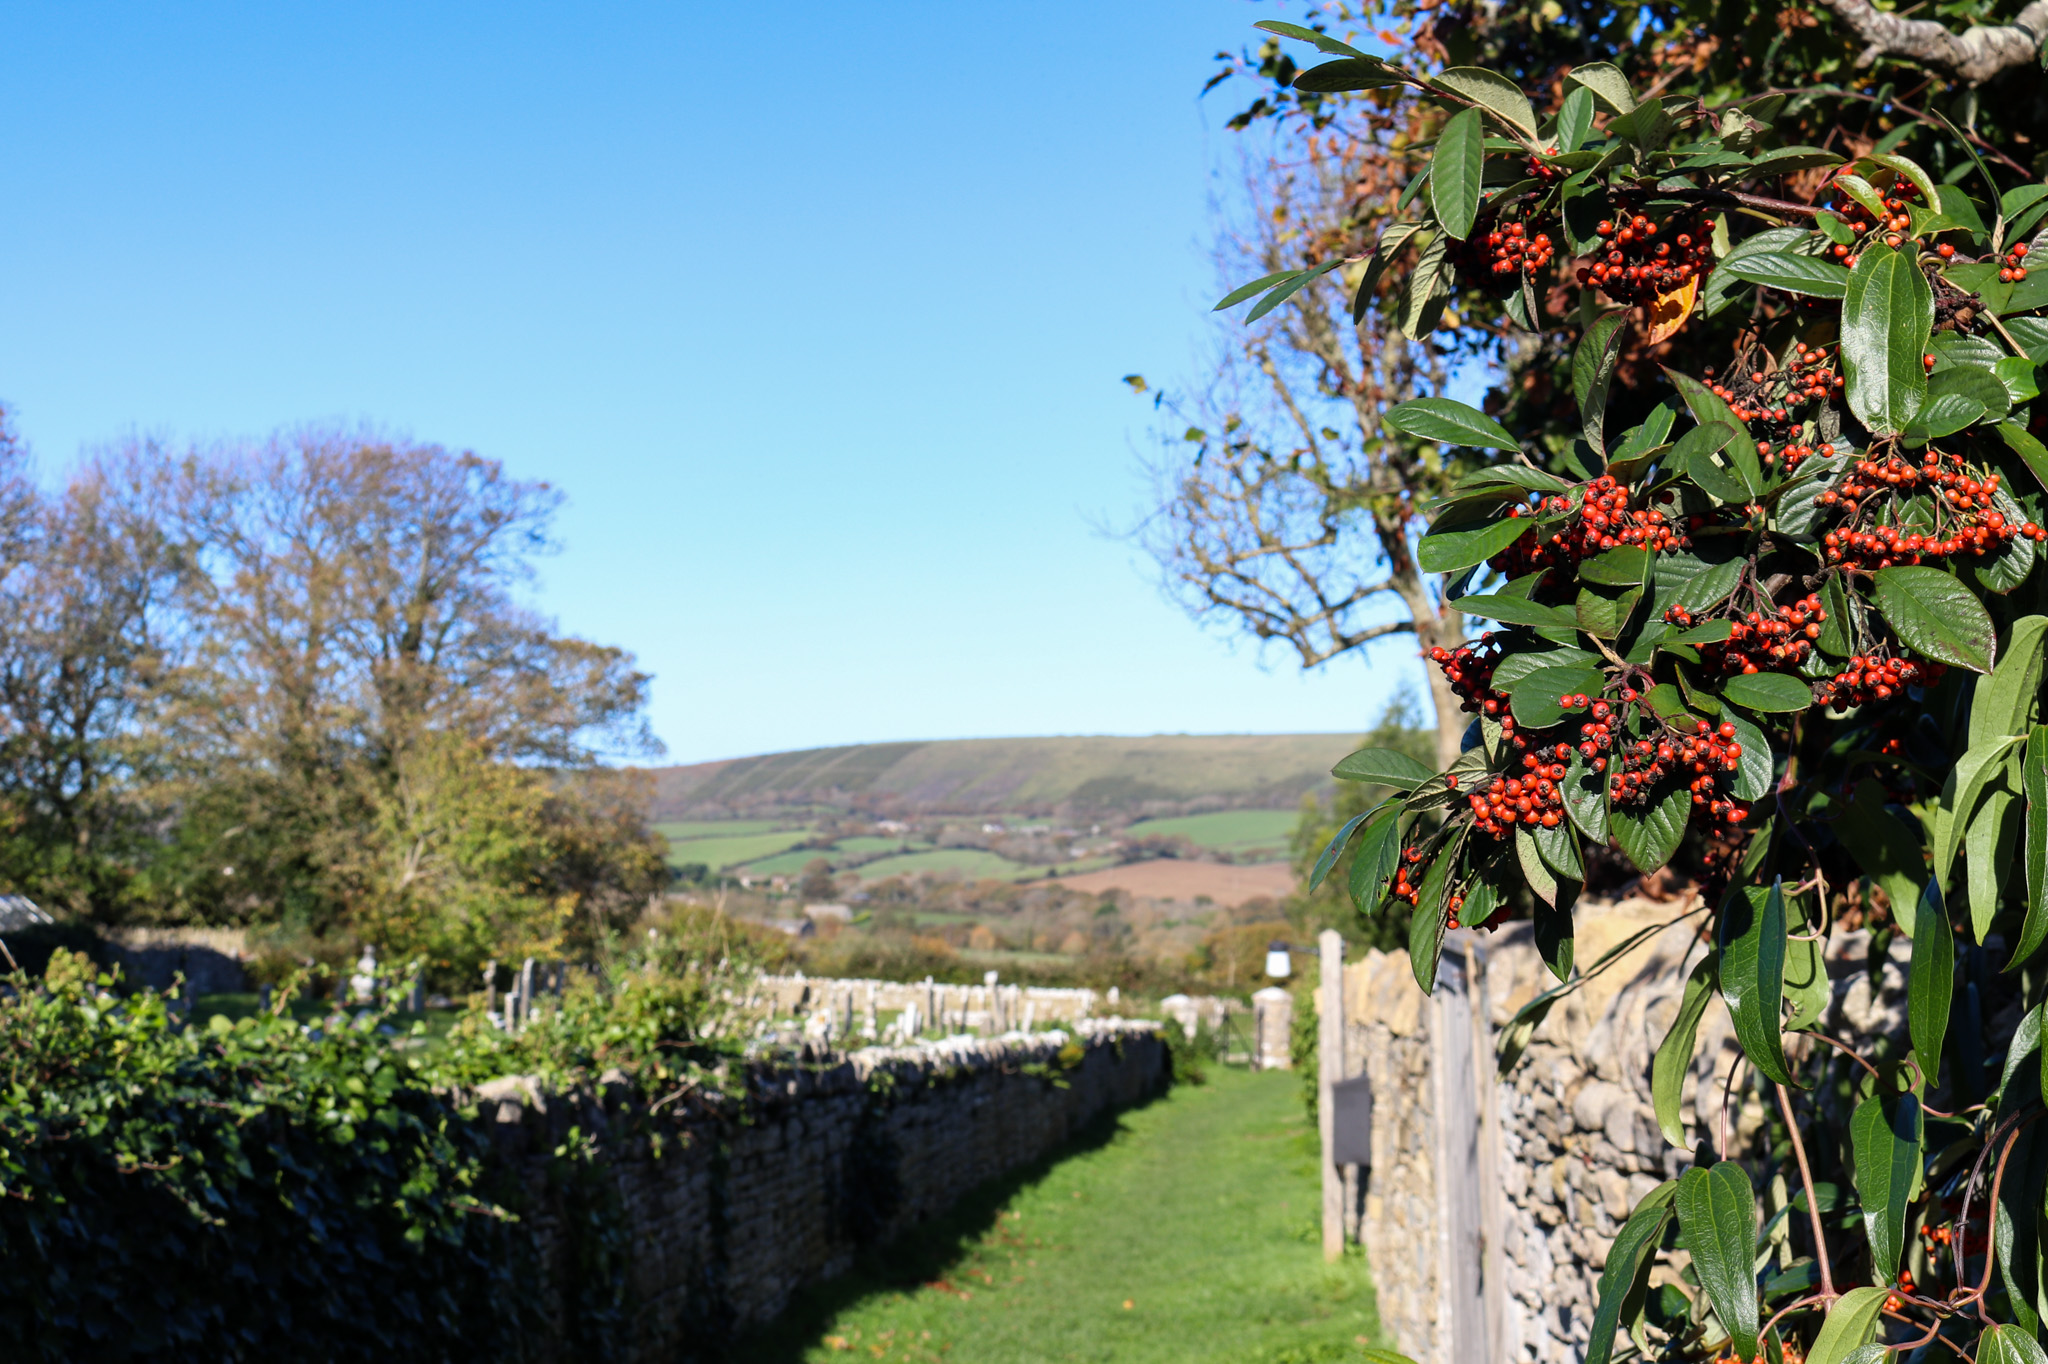 Berries growing along a walking path in Langton Matravers with view to the Purbeck Hills